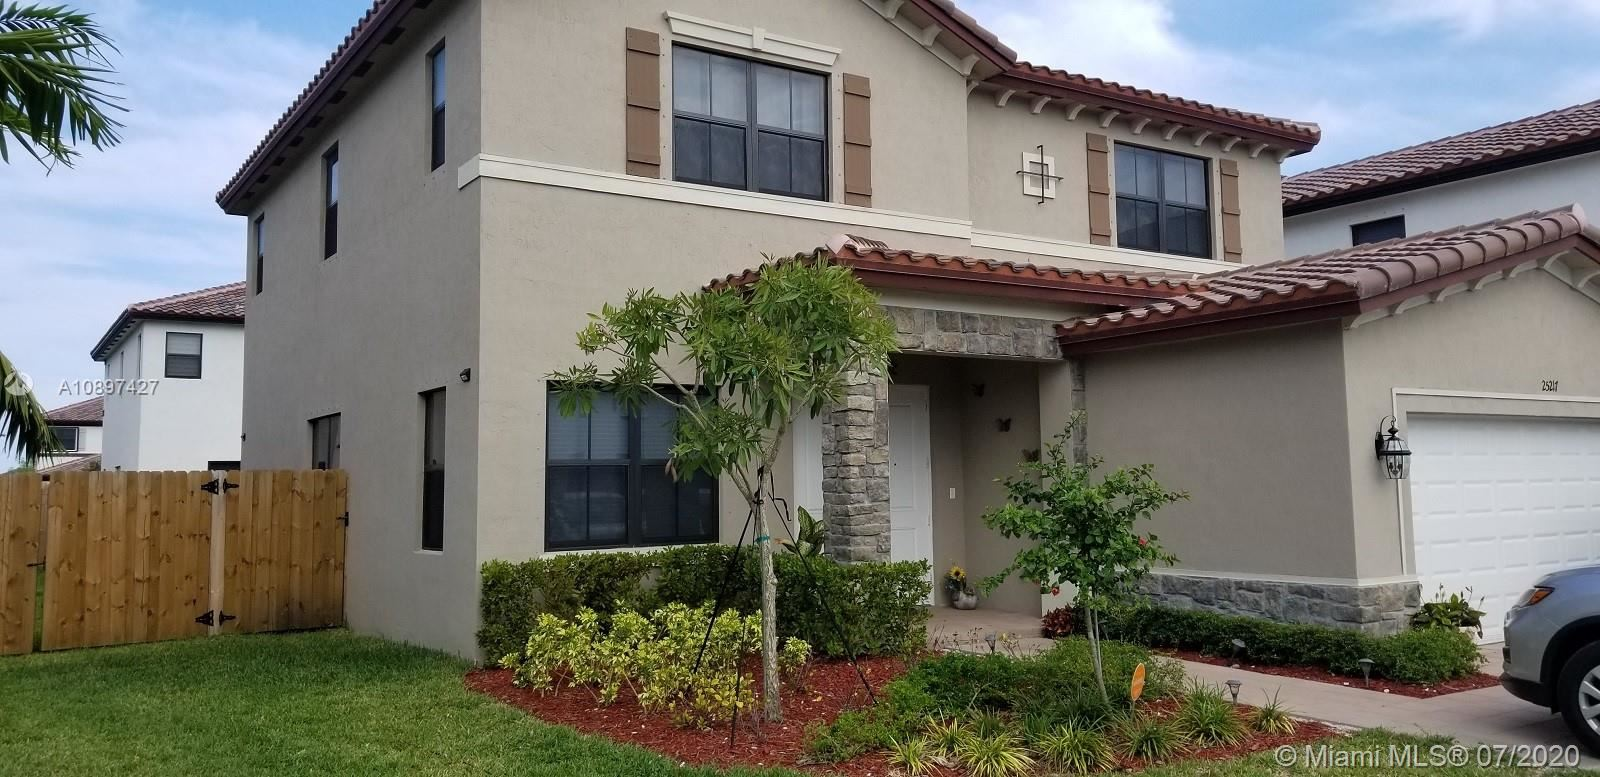 25217 SW 118th Ave, Homestead, FL 33032 - #: A10897427